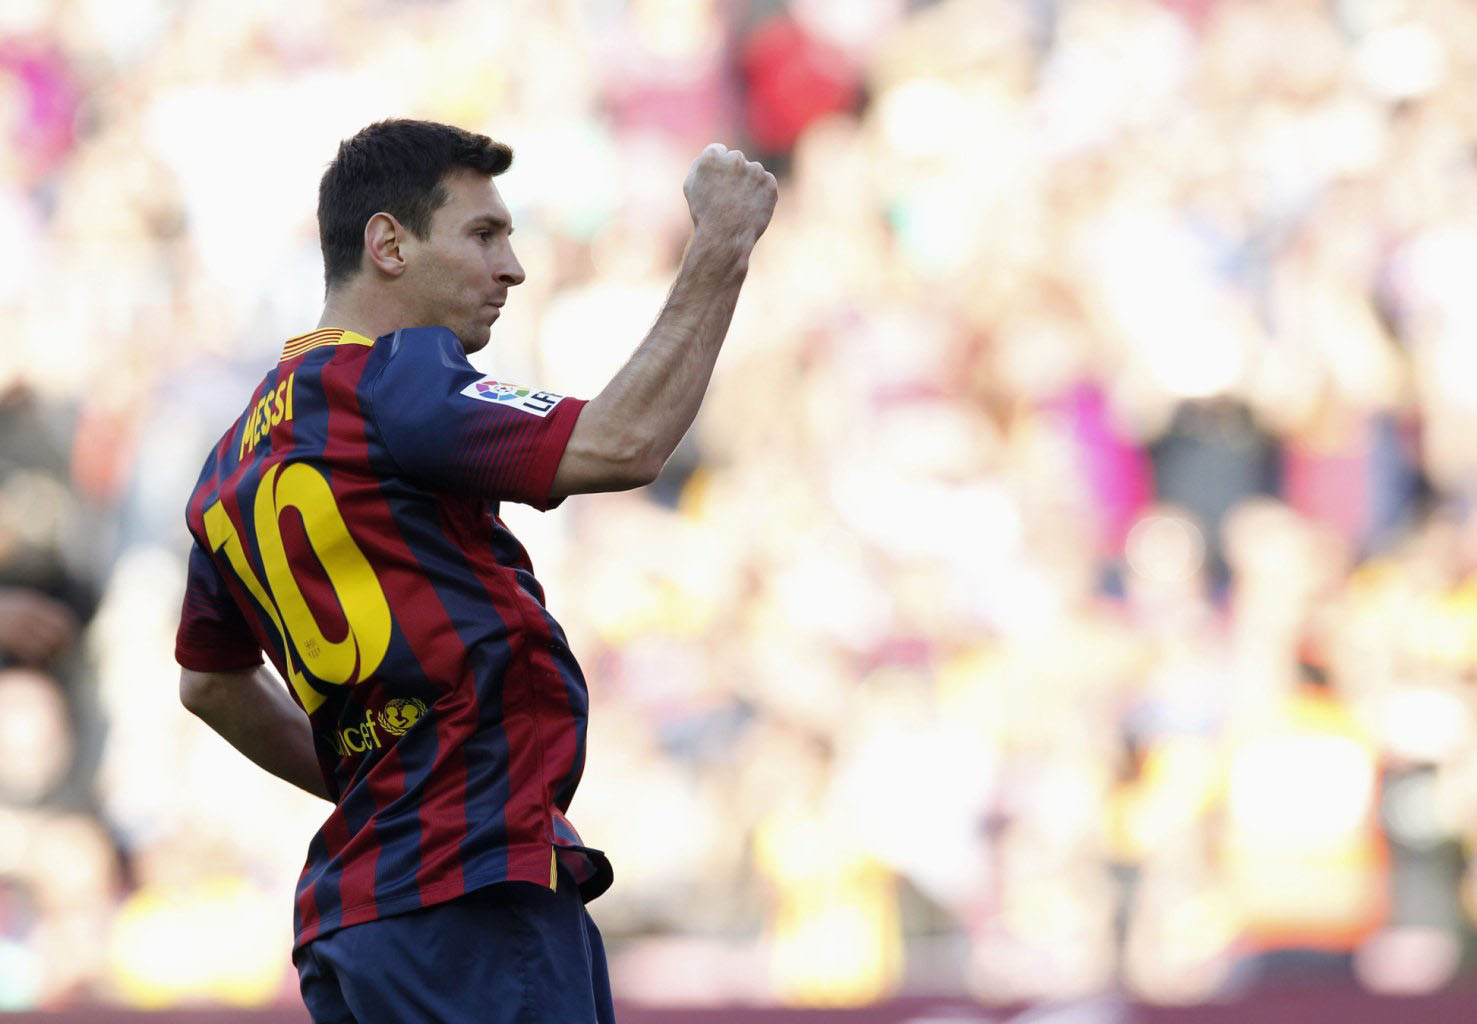 Lionel Messi celebrating another goal in the league